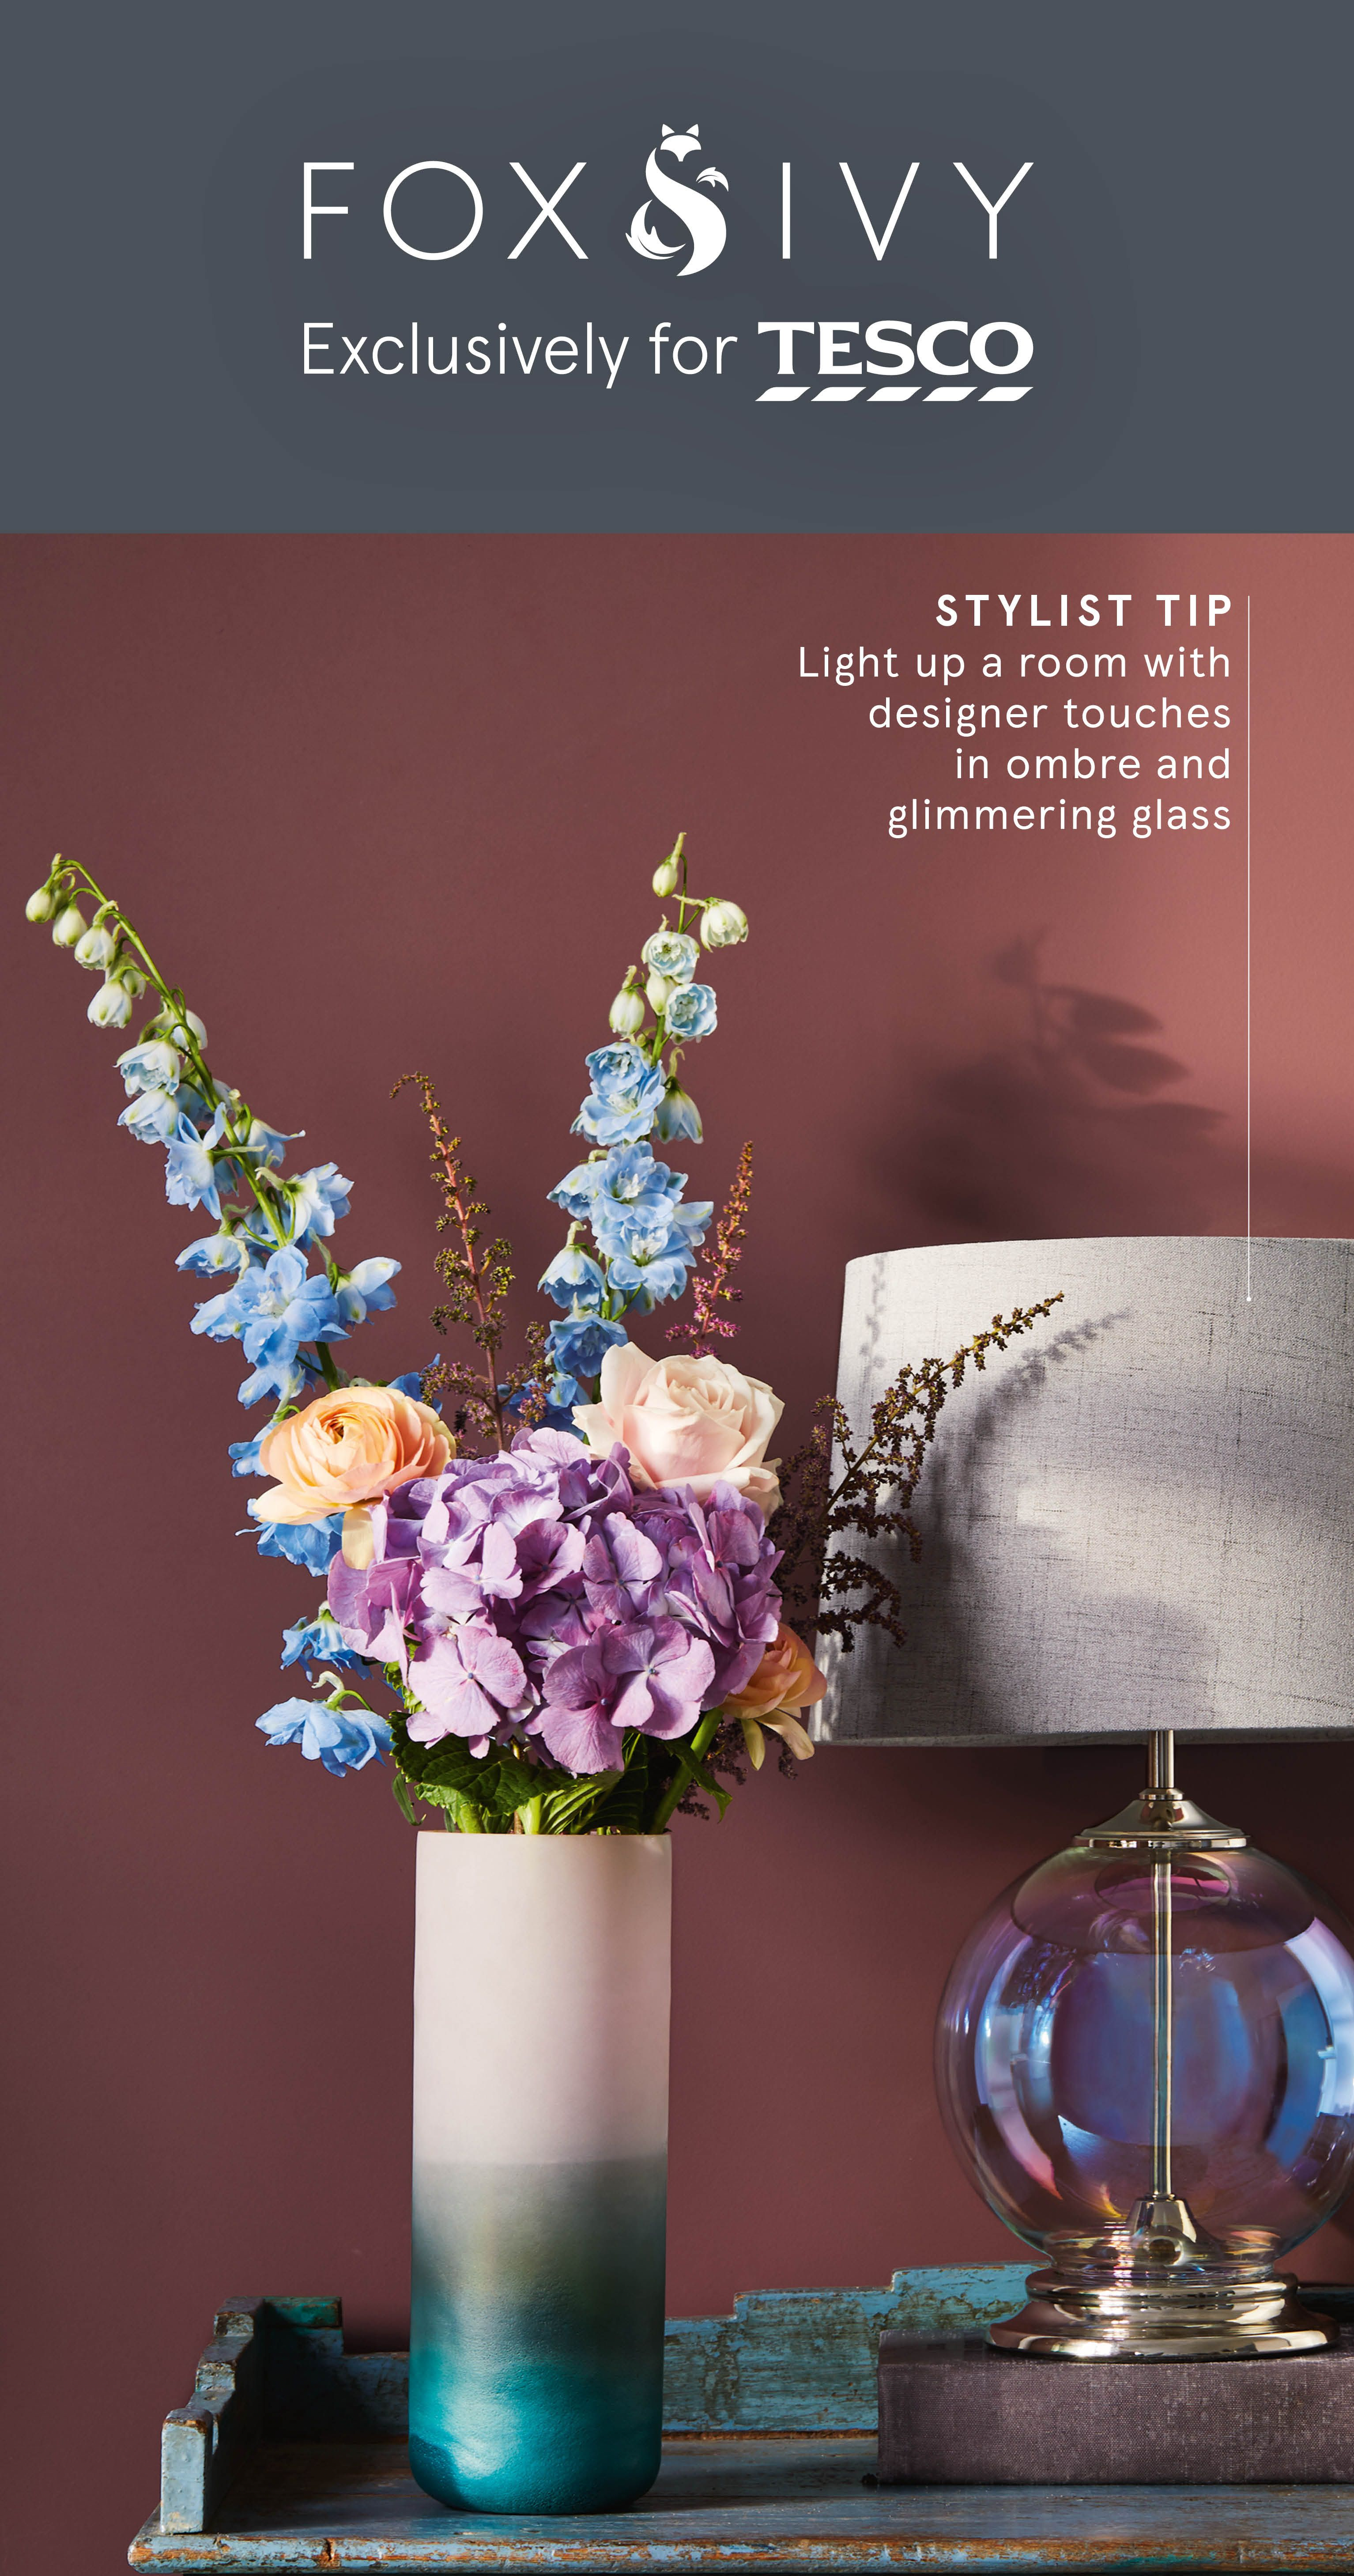 Our stunning ombre vase and iridescent table lamp from fox ivy will add stylish detailing to any space find it at tesco